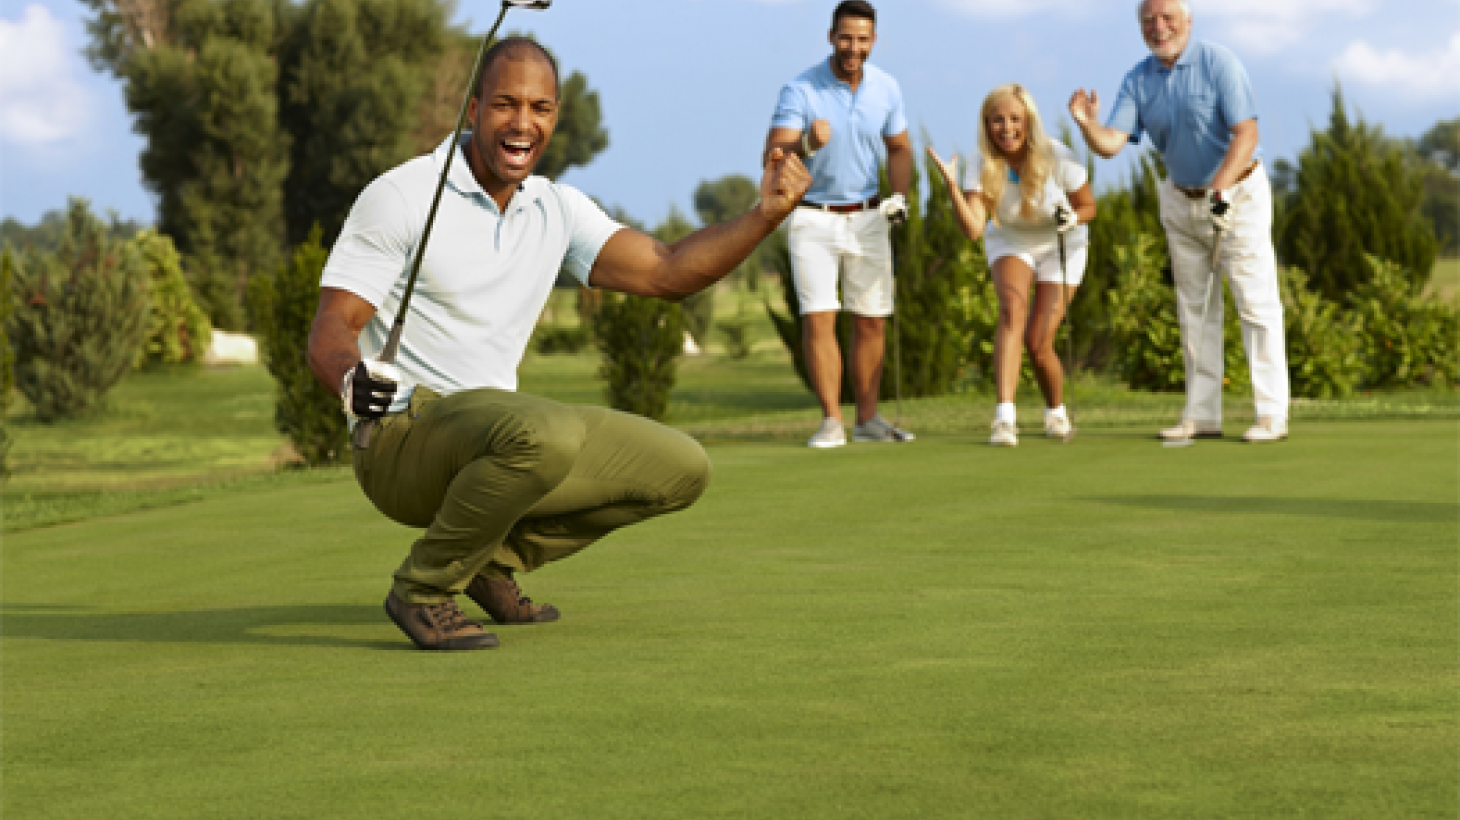 A Quick 11 Checklist for Planning Your Company Golf